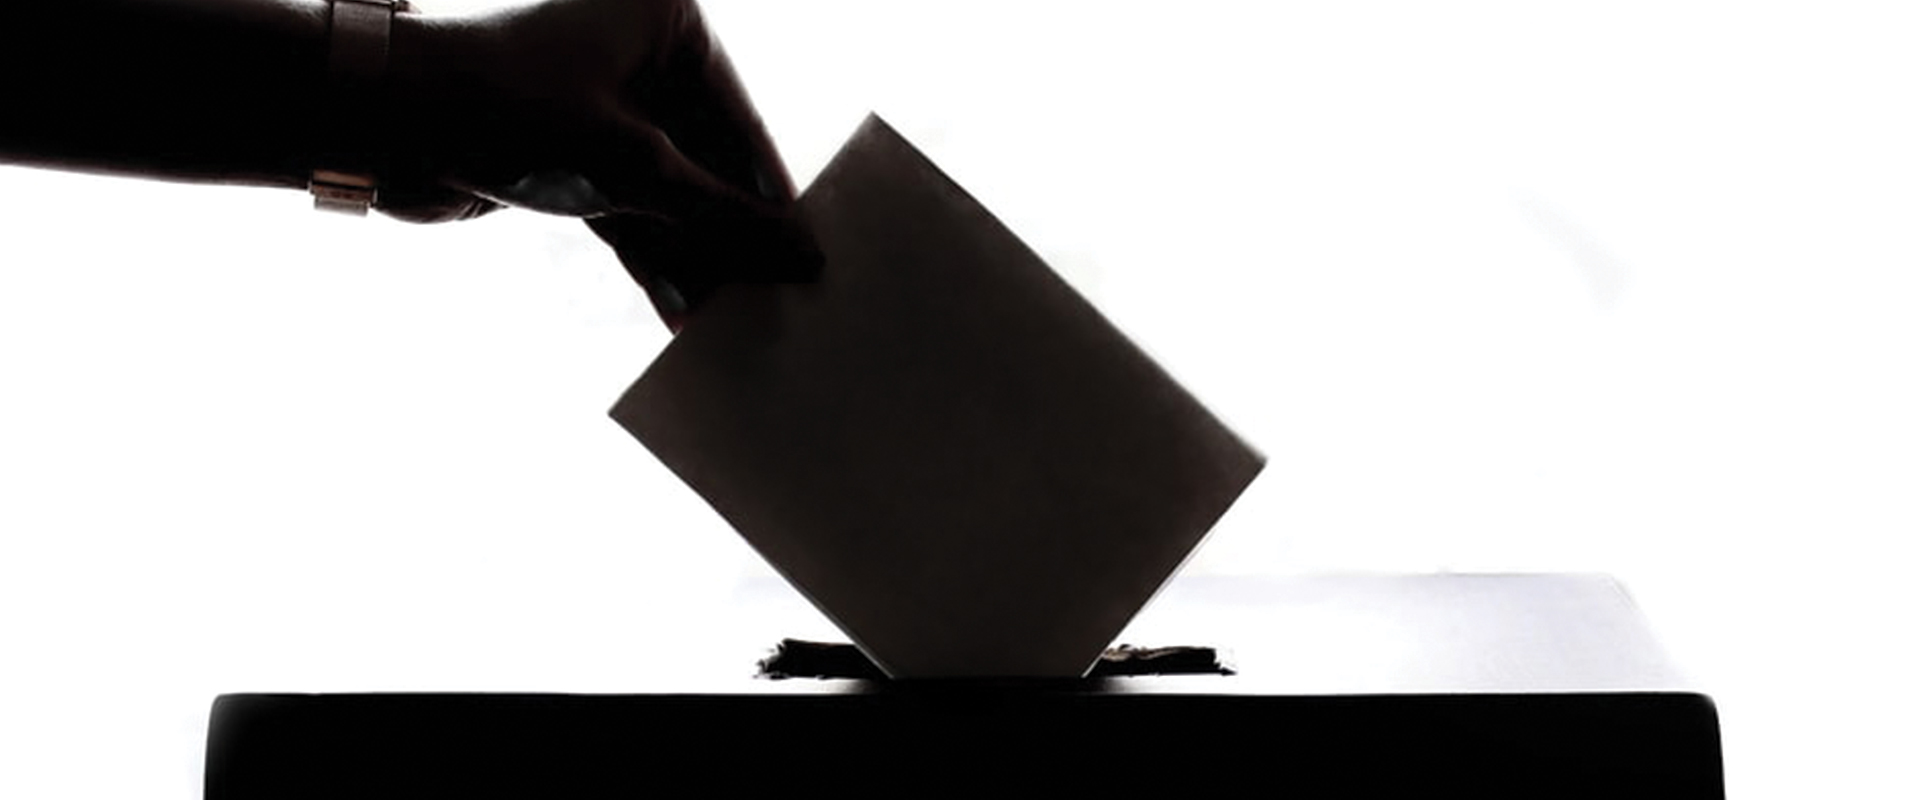 Person putting a voting ballot into a box